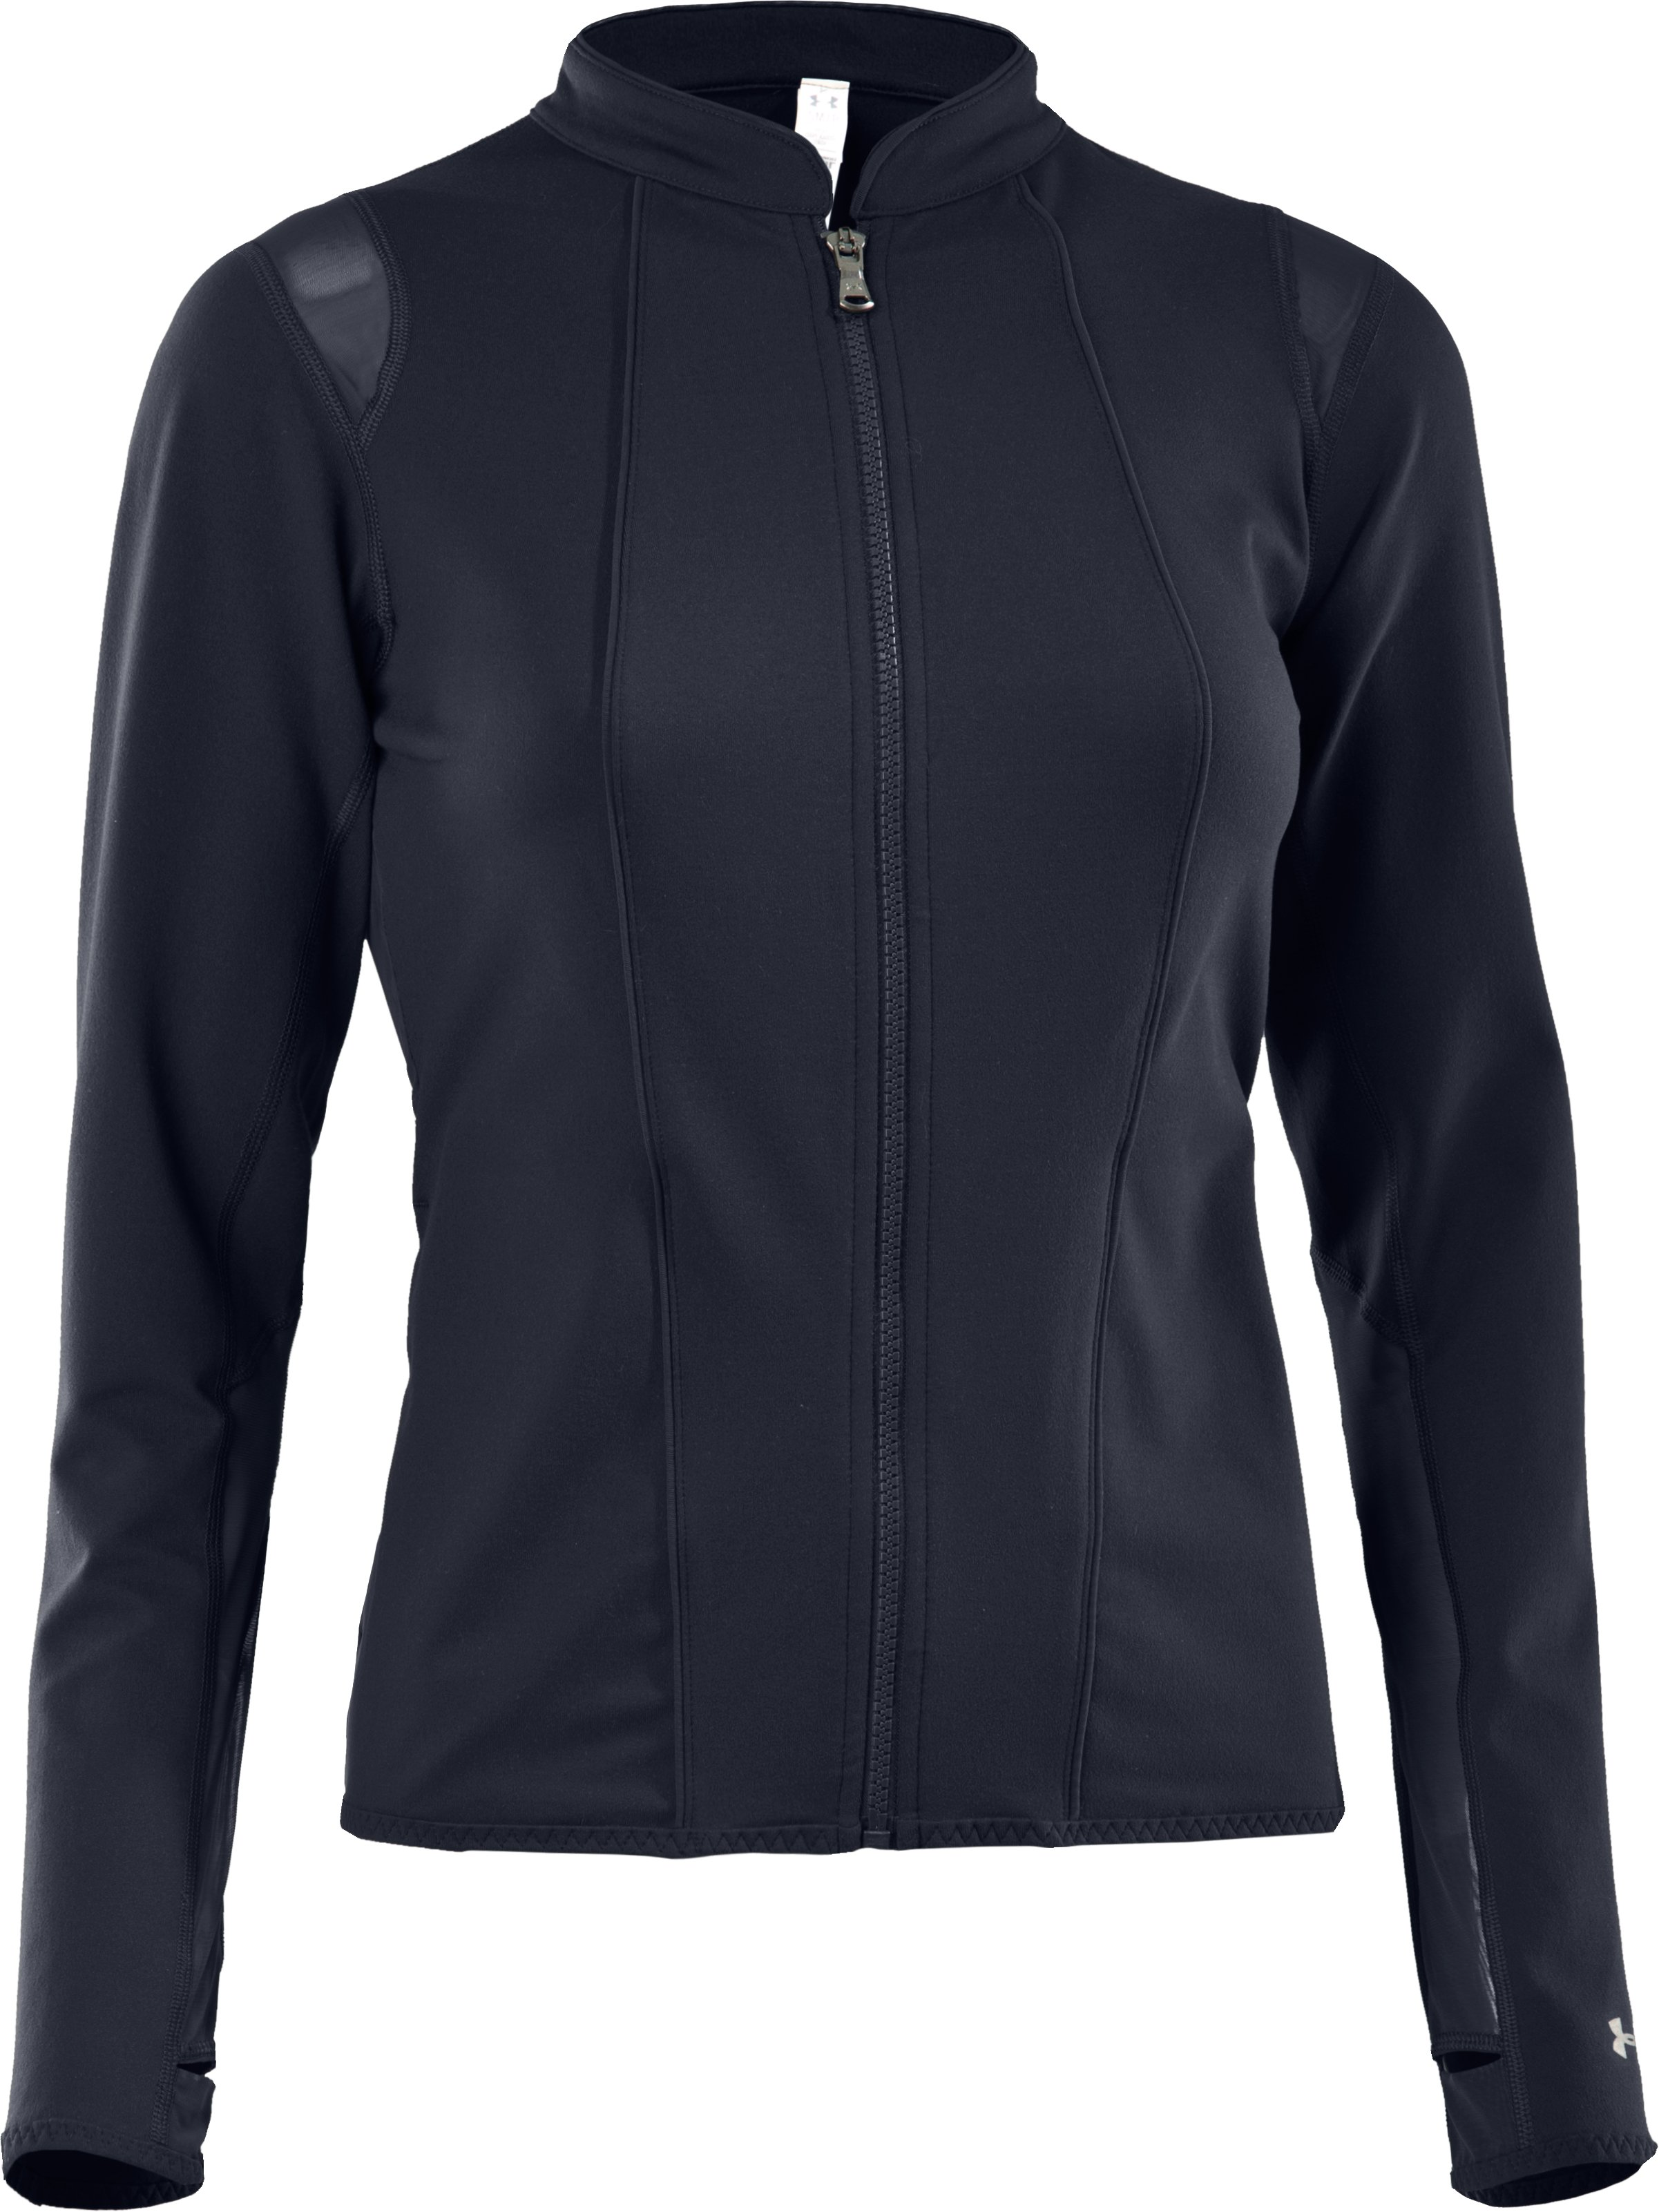 UA Studio Rave Jacket, ANTHRACITE, undefined